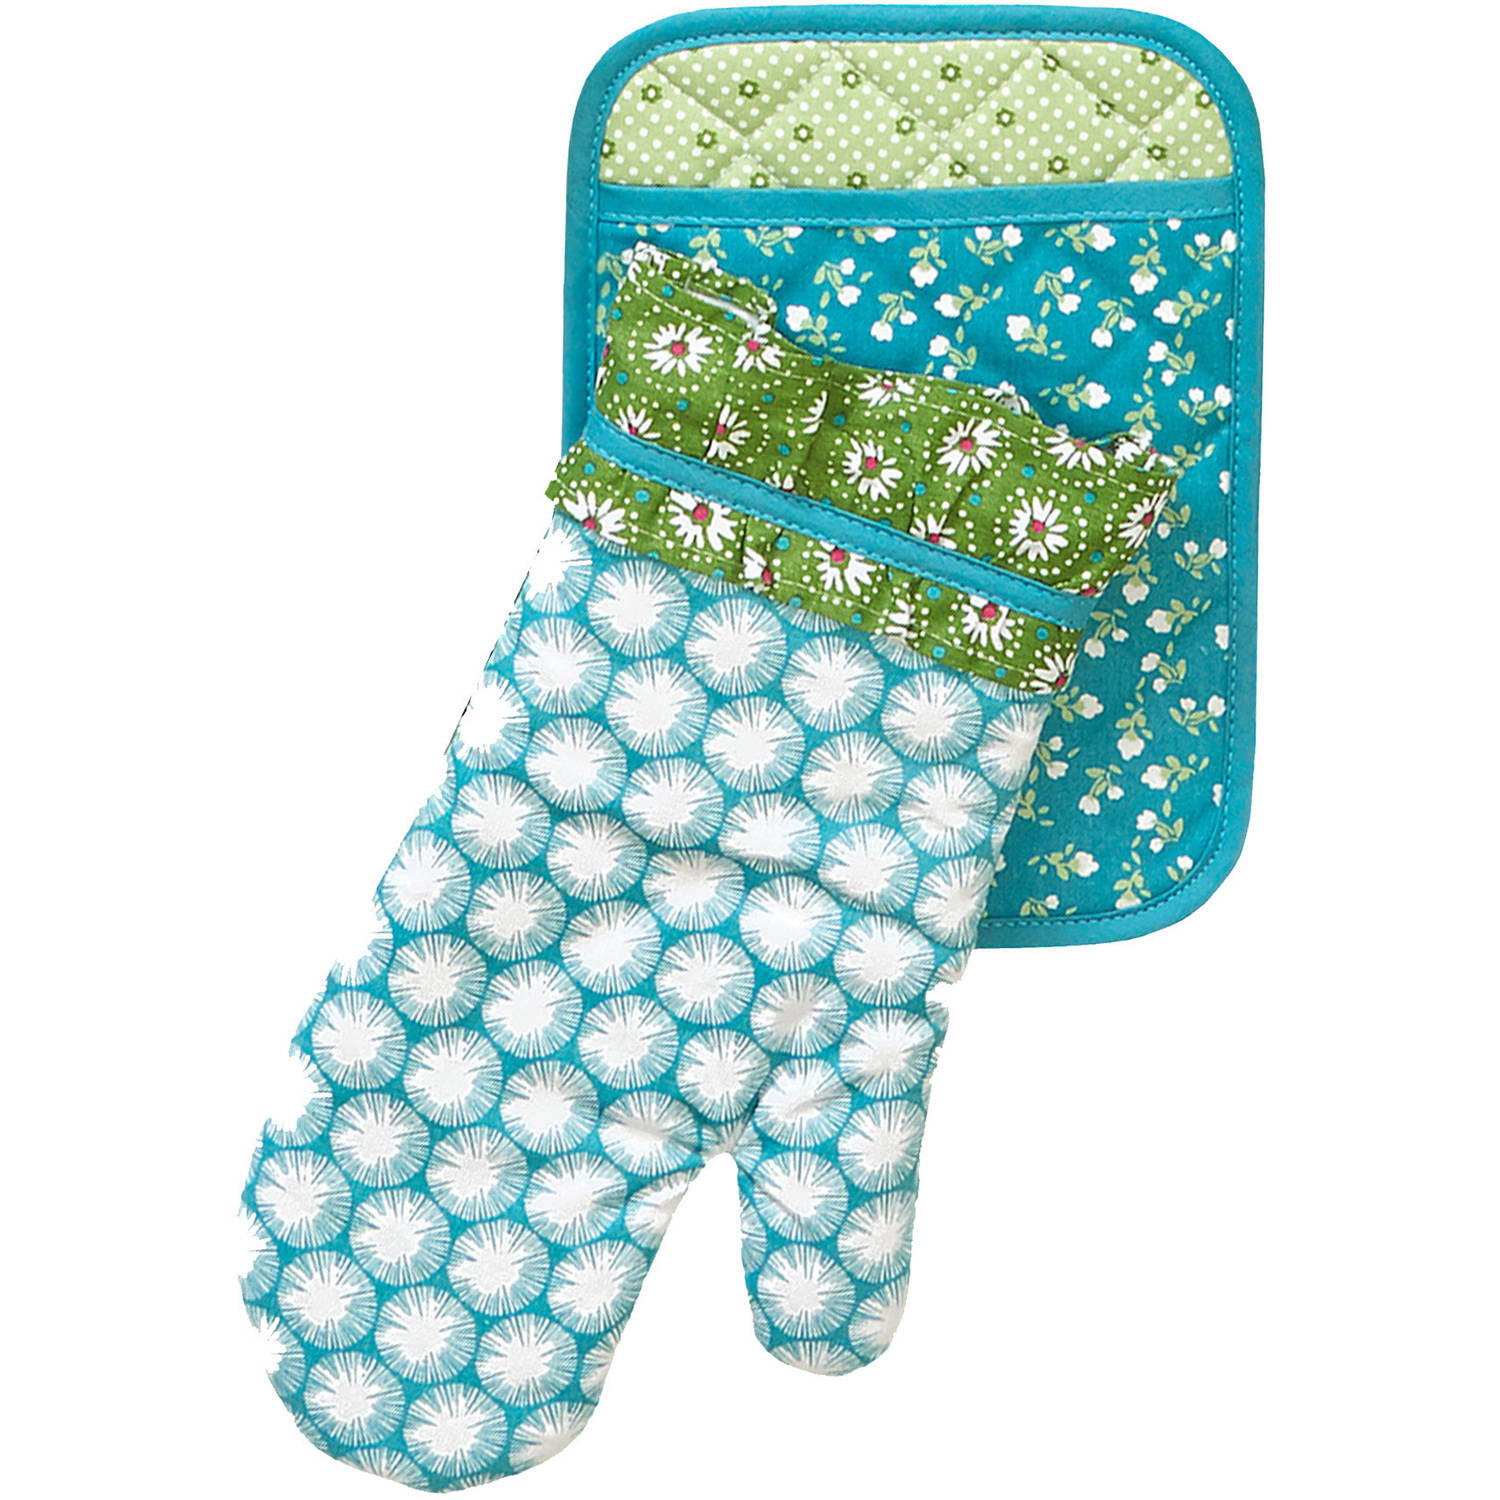 The Pioneer Woman Dandelion Pot Holder/Oven Mitt Set